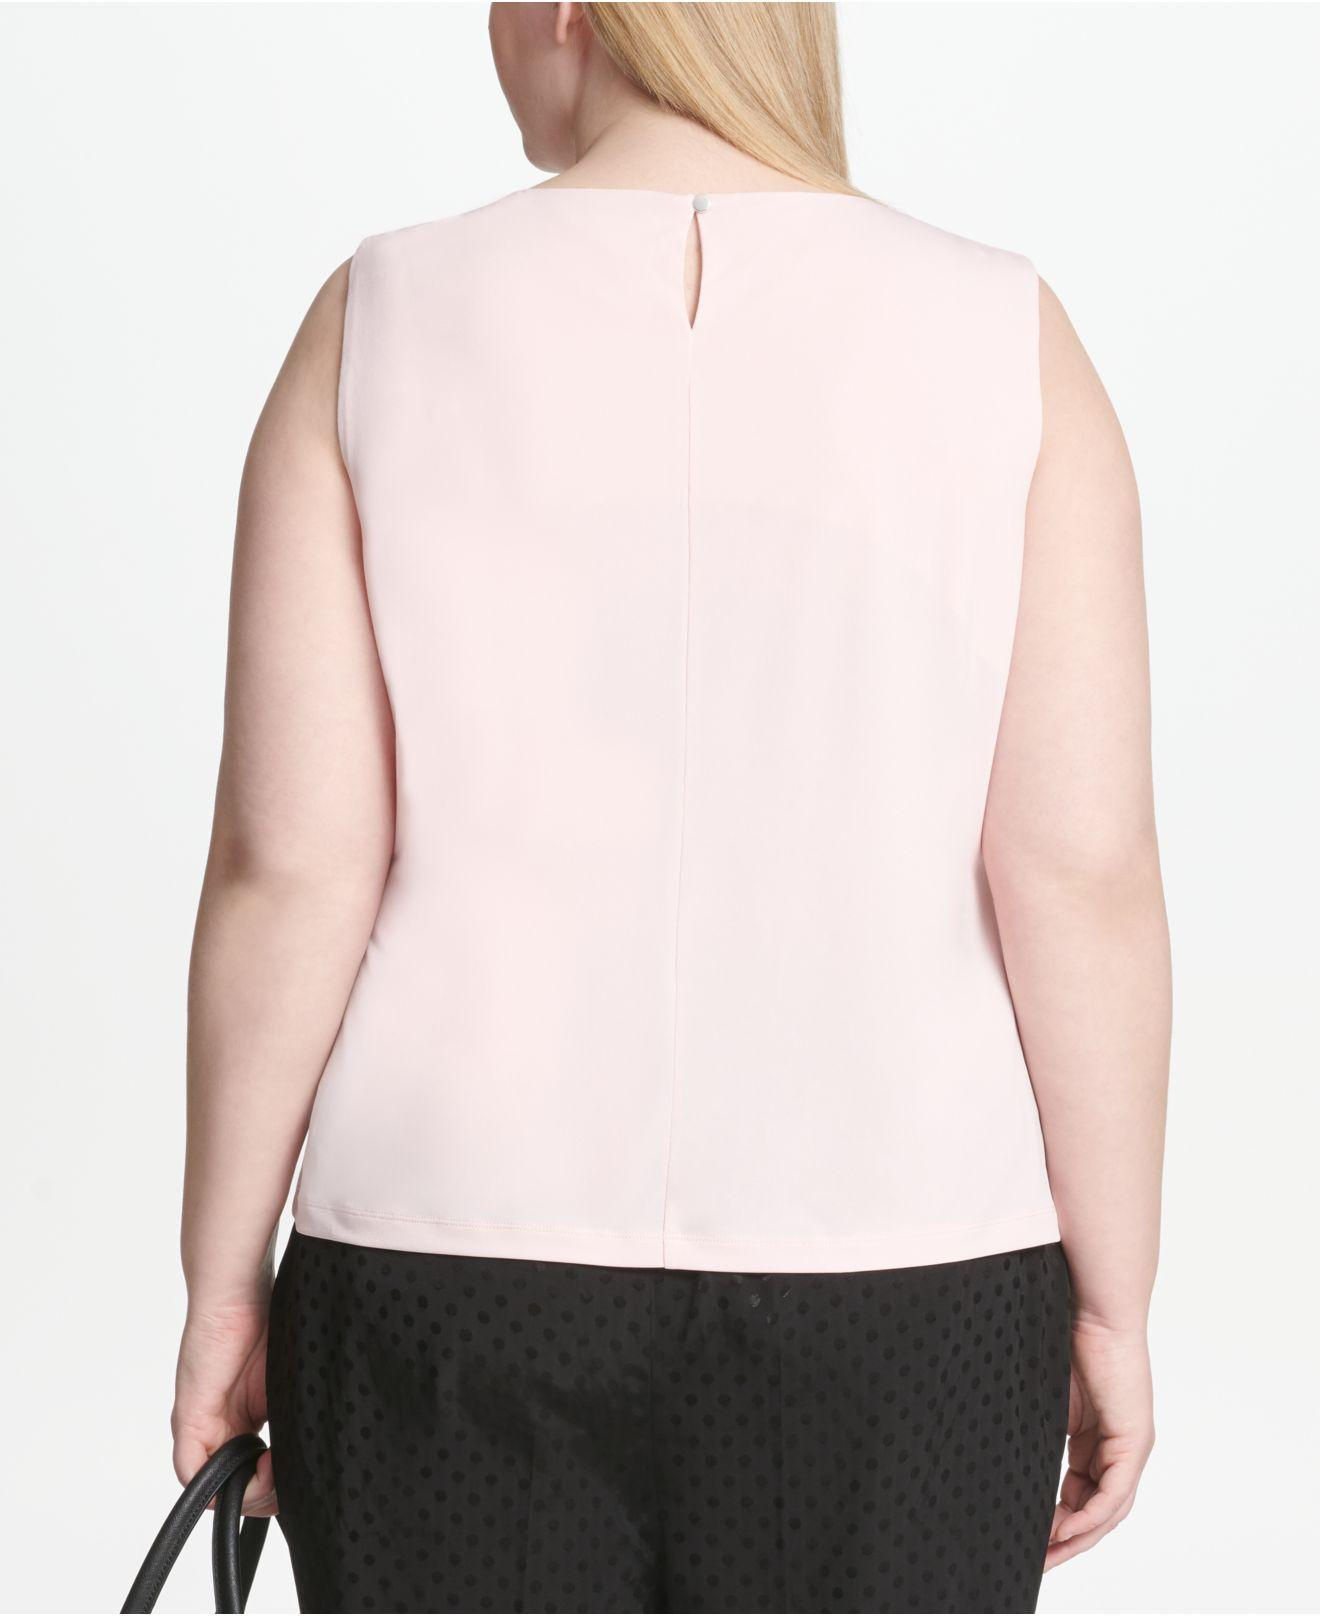 327aaf9262fbb Lyst - Calvin Klein Plus Size Sleeveless Pleated Top in Pink